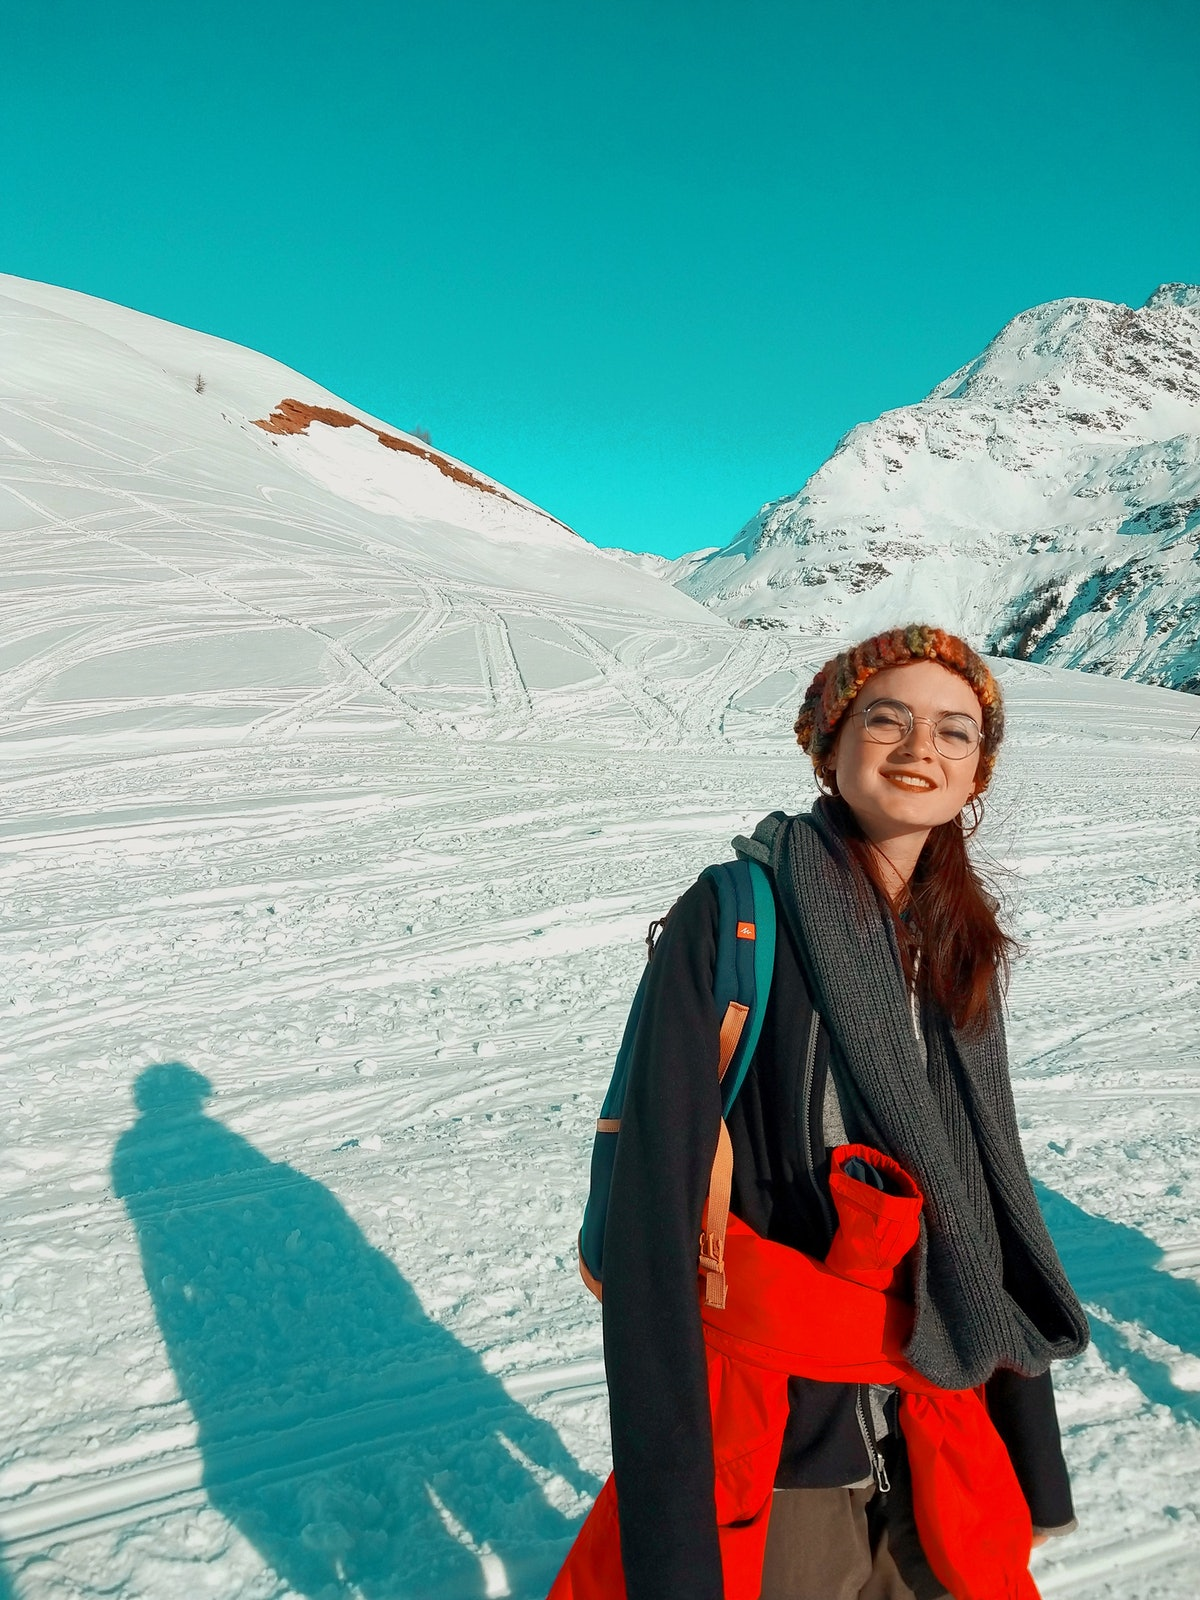 A young woman poses for a picture while on a winter hike in the mountains.